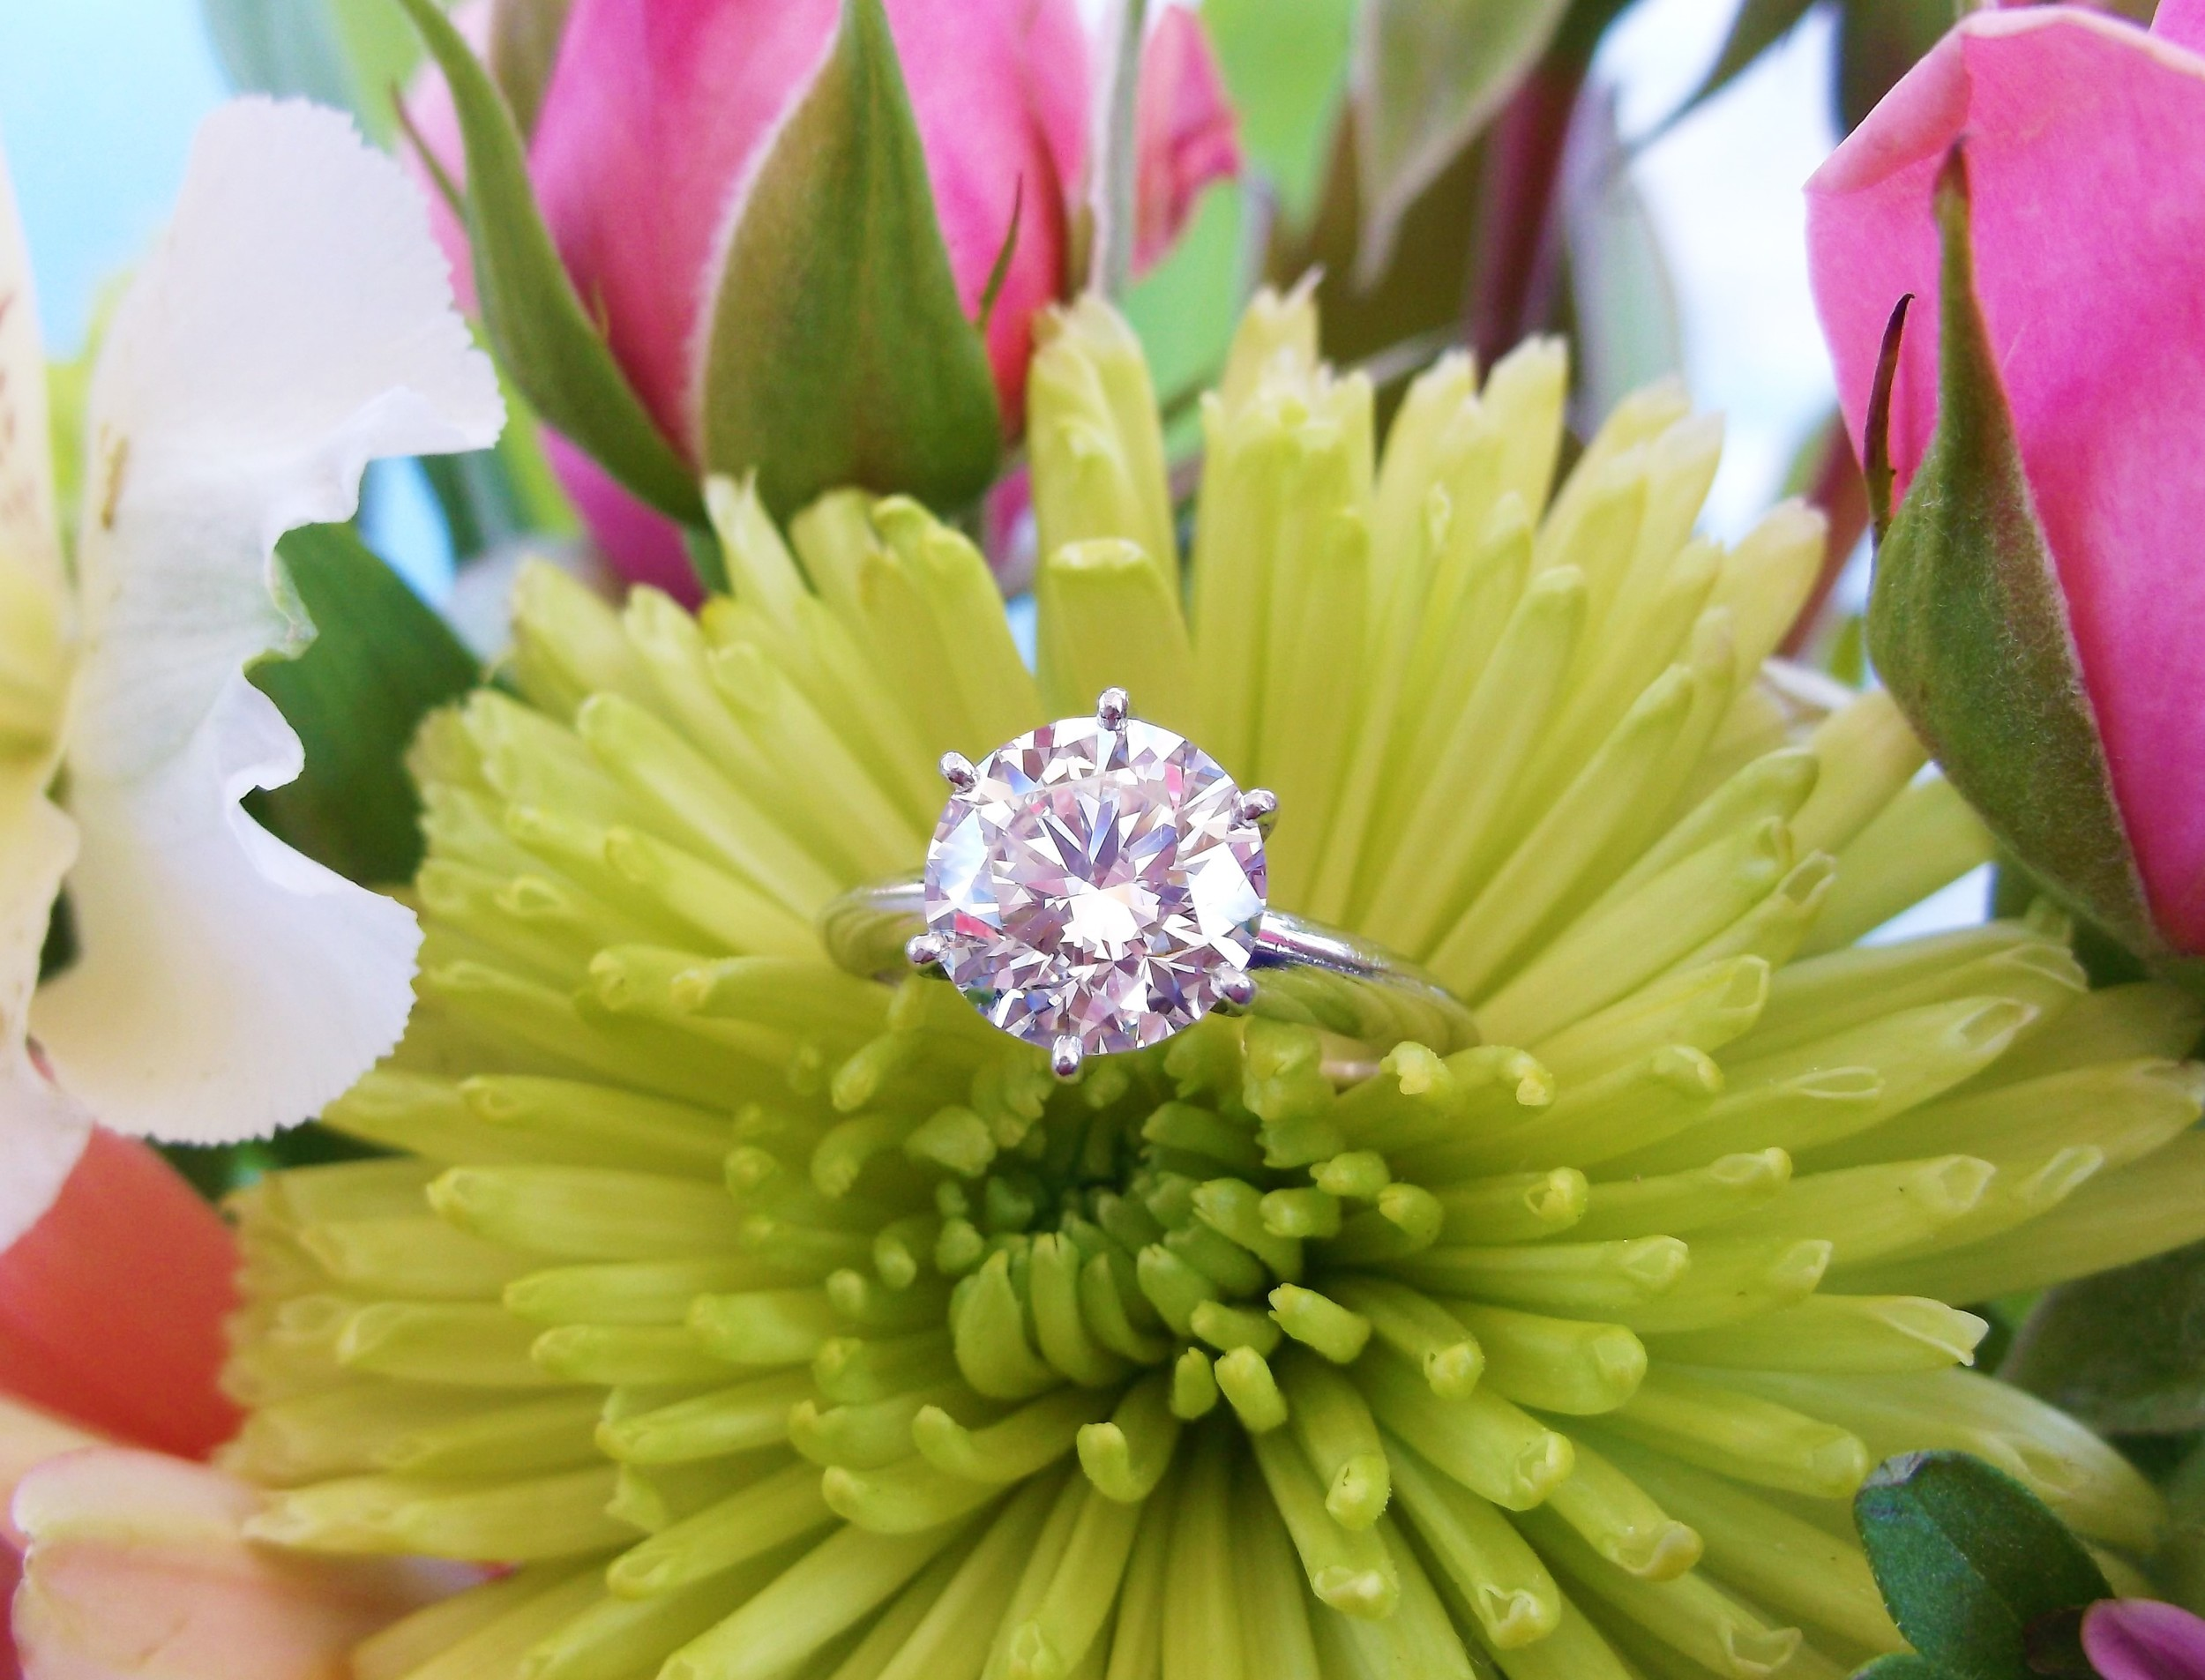 SOLD - Extraordinary Tiffany & Company 2.03 carat solitaire round brilliant cut diamond in a classic six prong platinum setting.